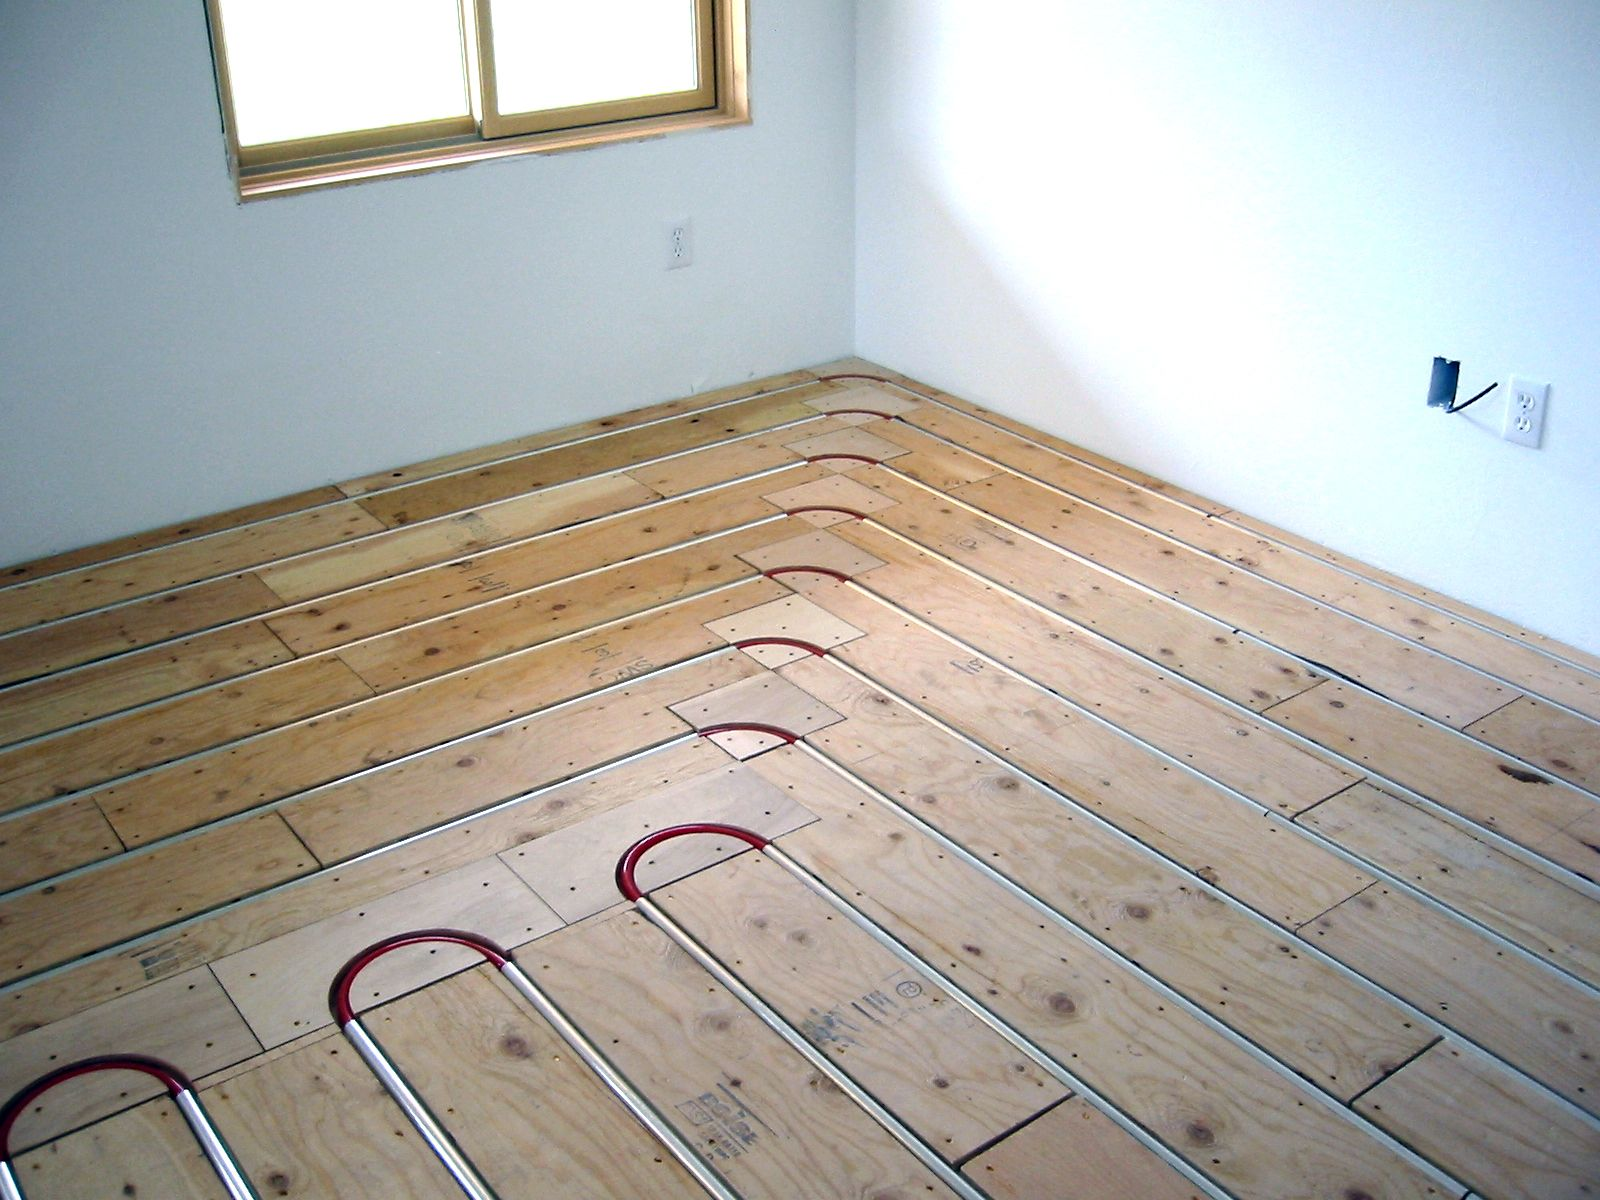 Best flooring for radiant heat - Thermofin U Radiant Heated Floor New Construction Radiant Engineering Free Samples Of Thermofin At